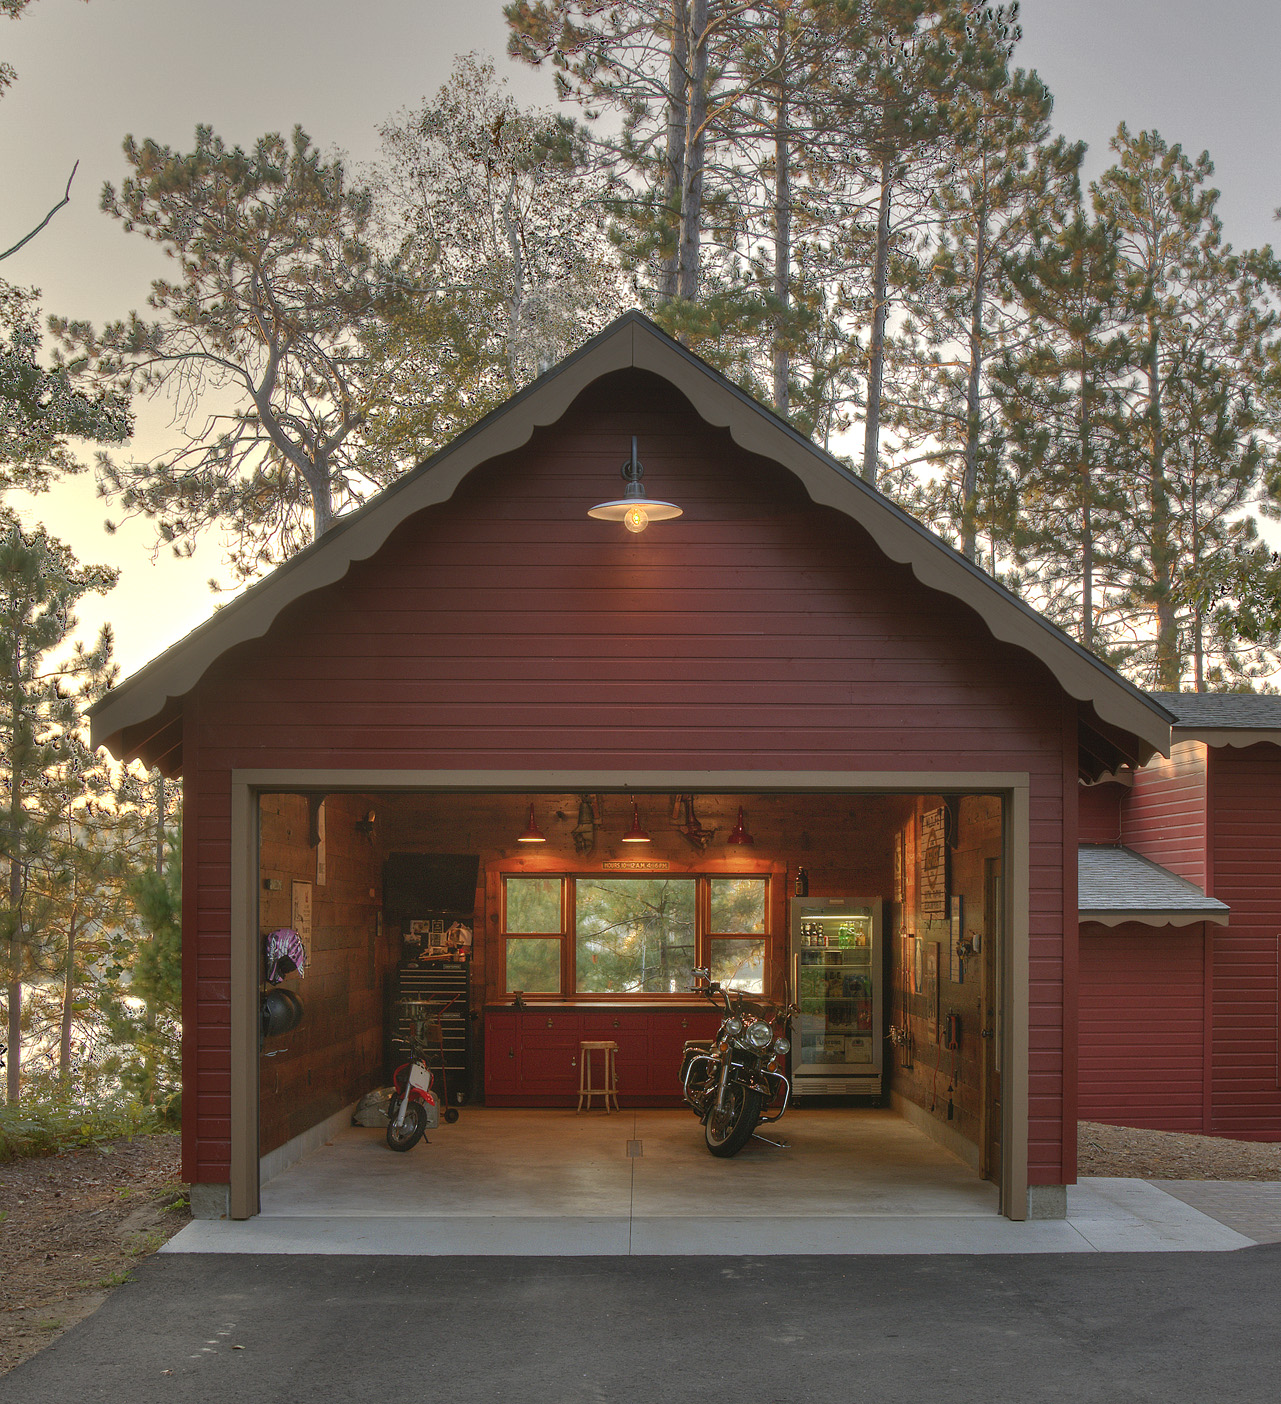 Classic Gooseneck Barn Lights Give New Space Old Garage Feel Inspiration Barn Light Electric